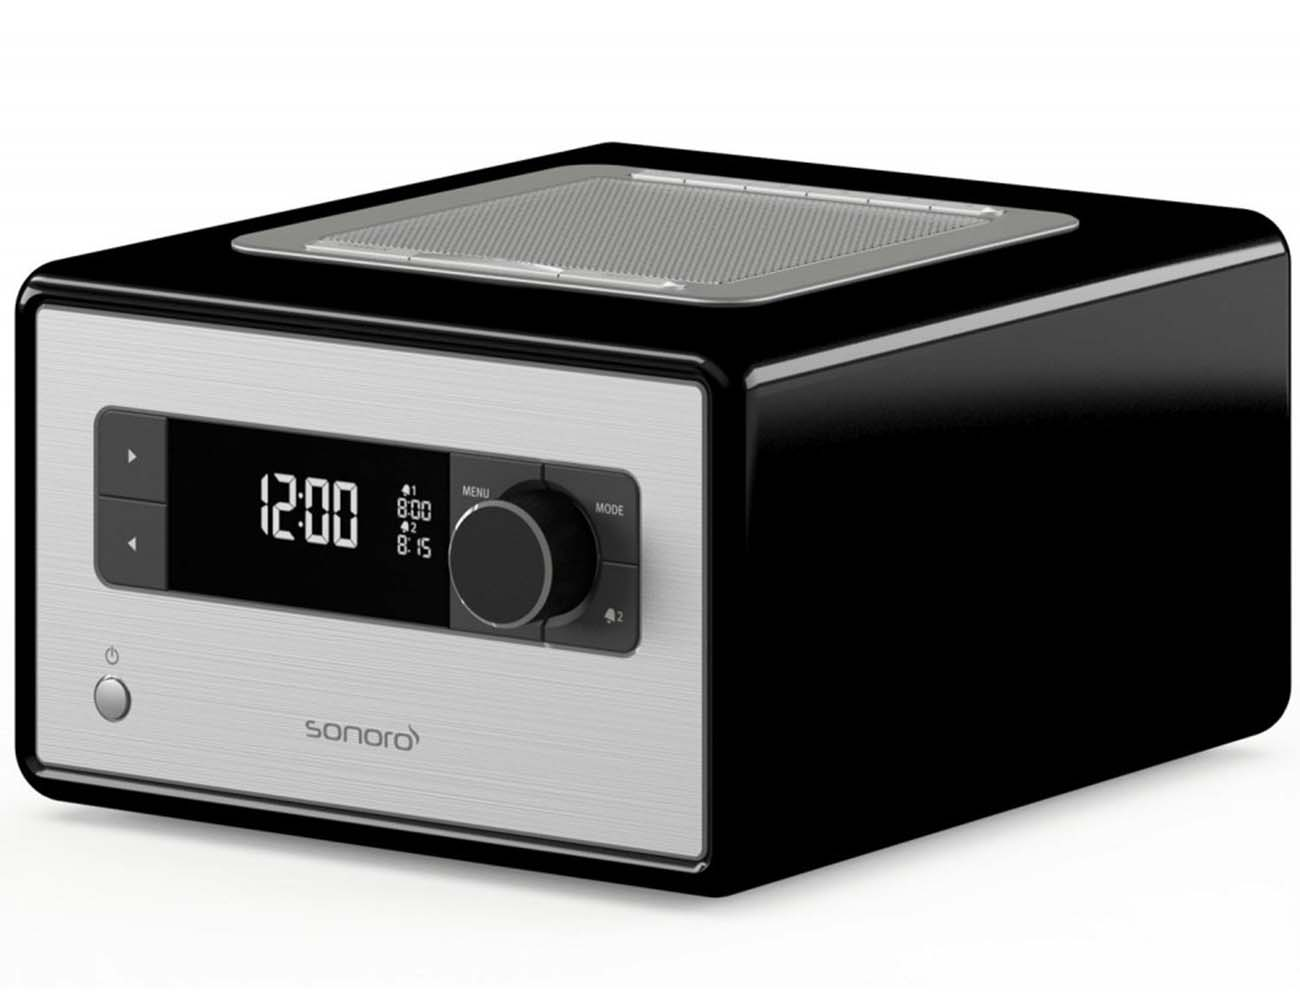 sonoroRADIO – The All-In-One Alarm Clock